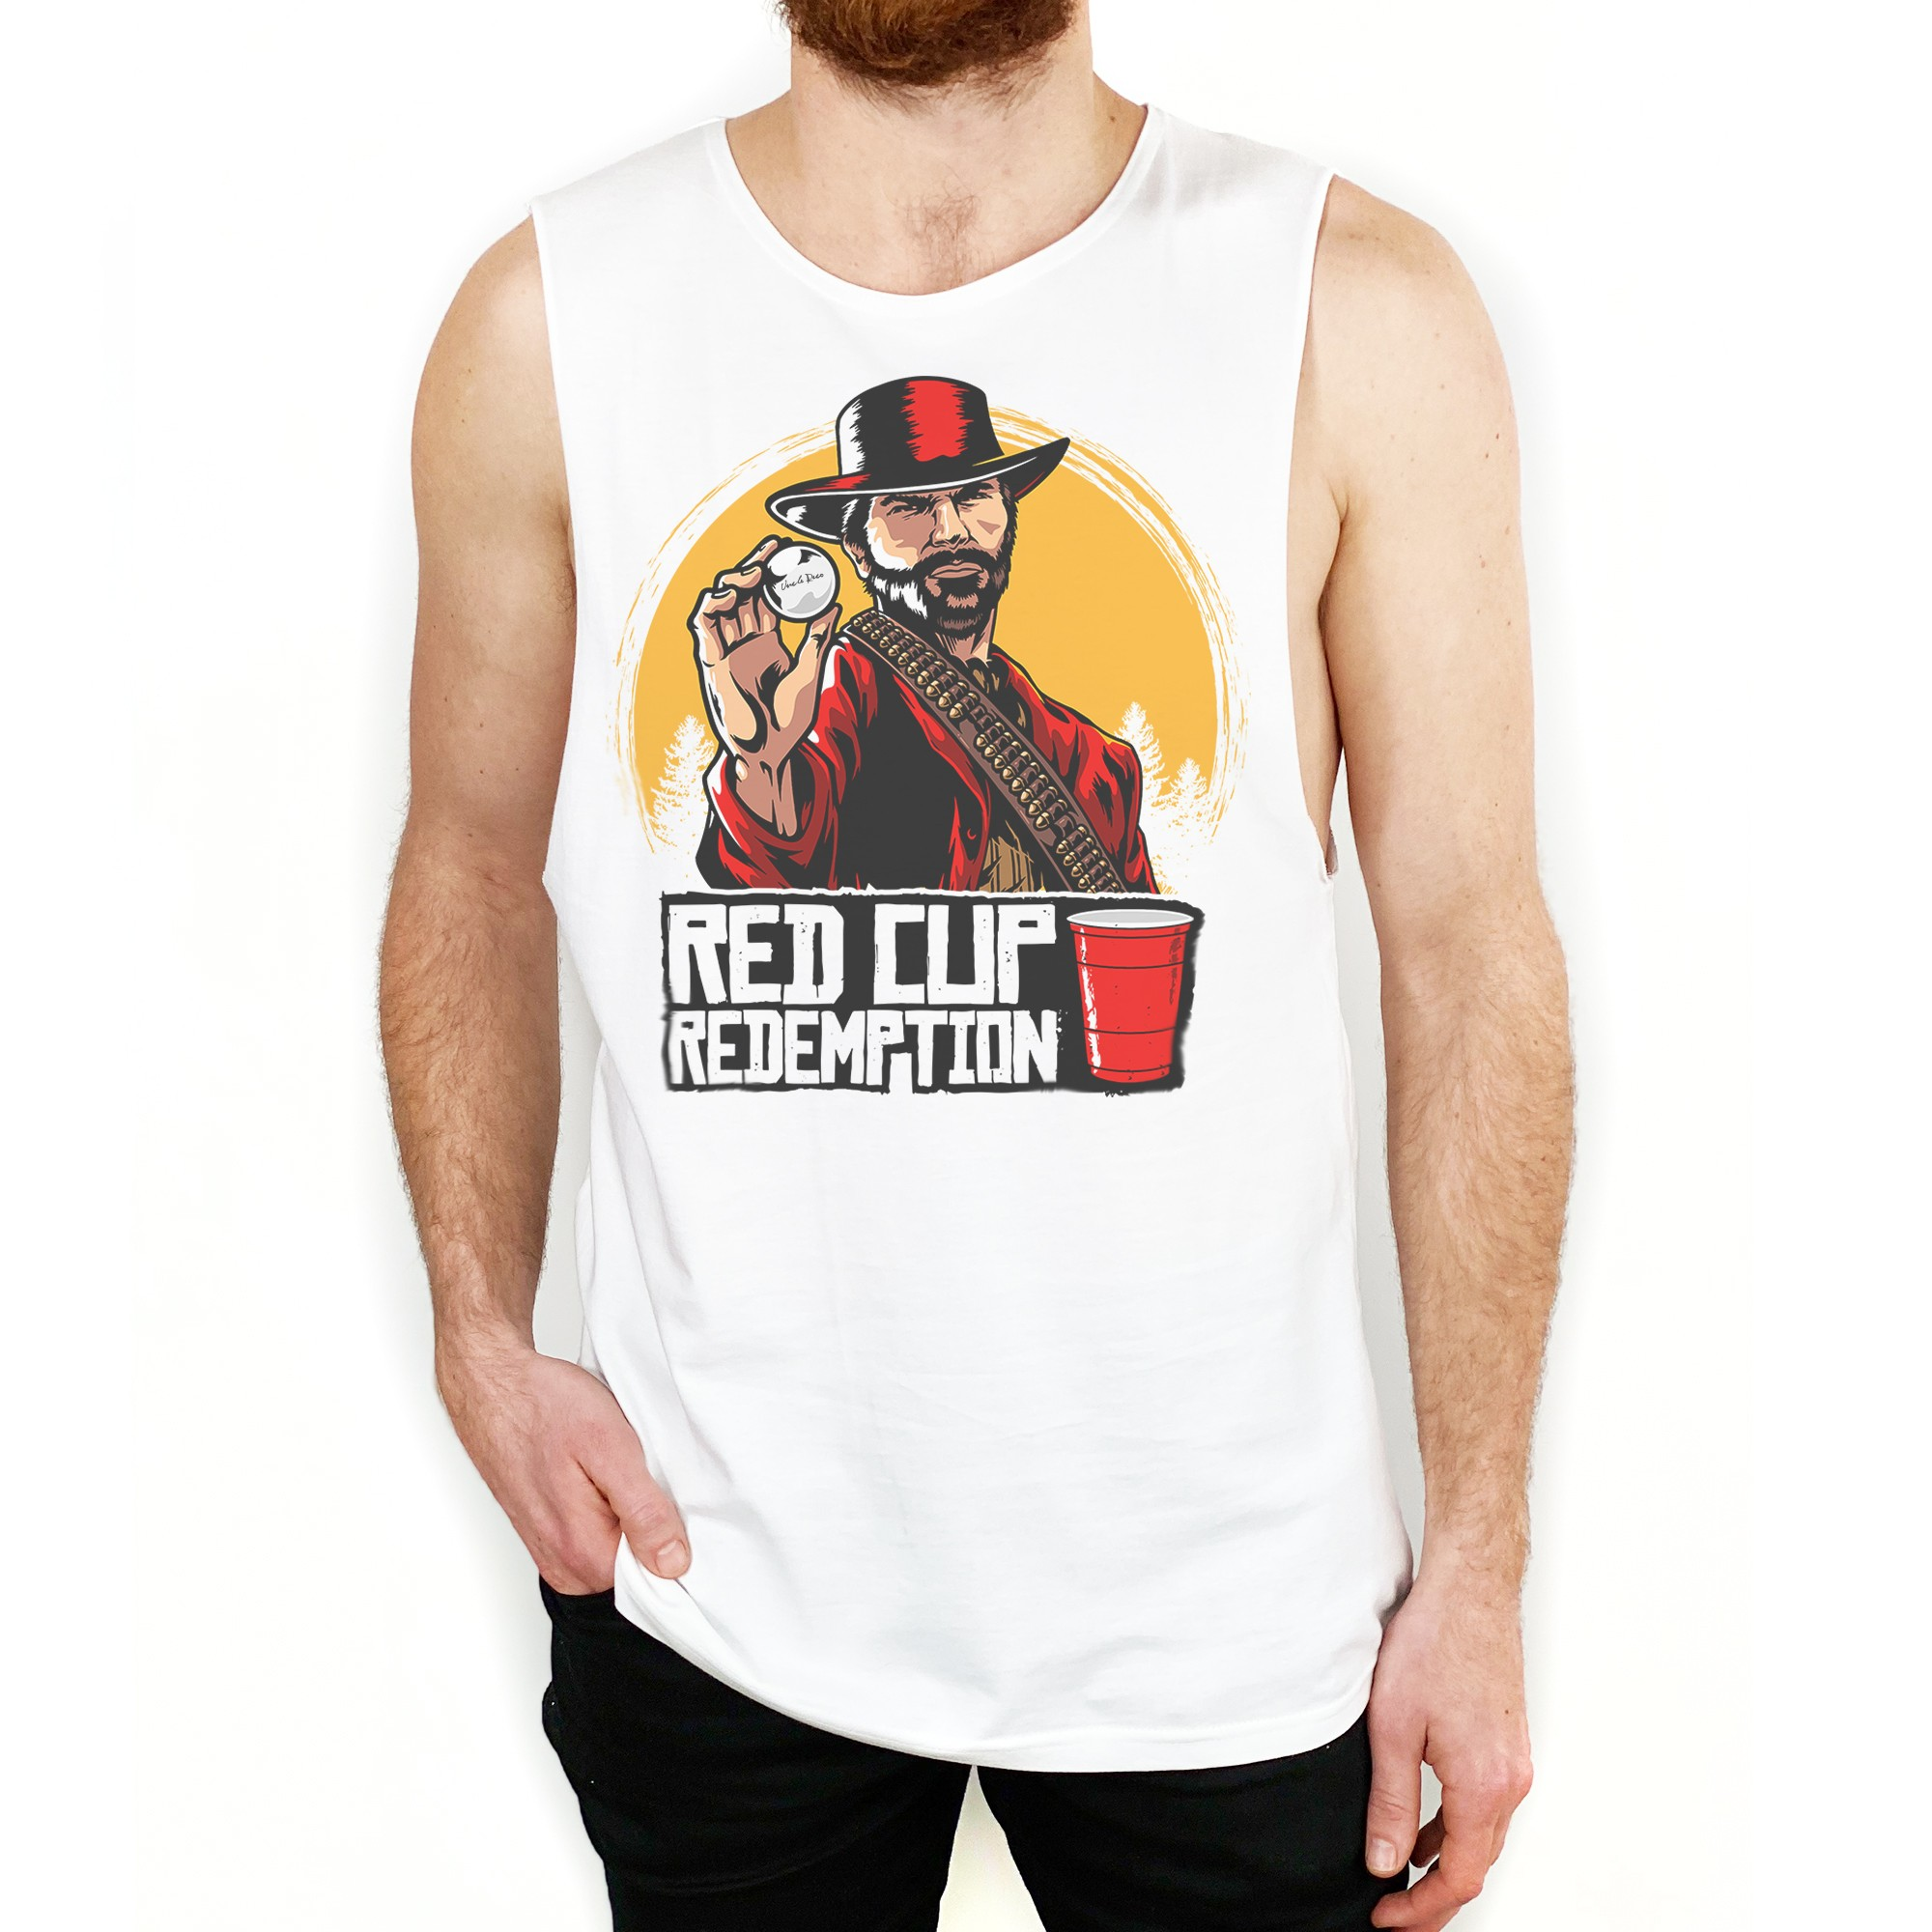 RED CUP REDEMPTION WHITE TANK